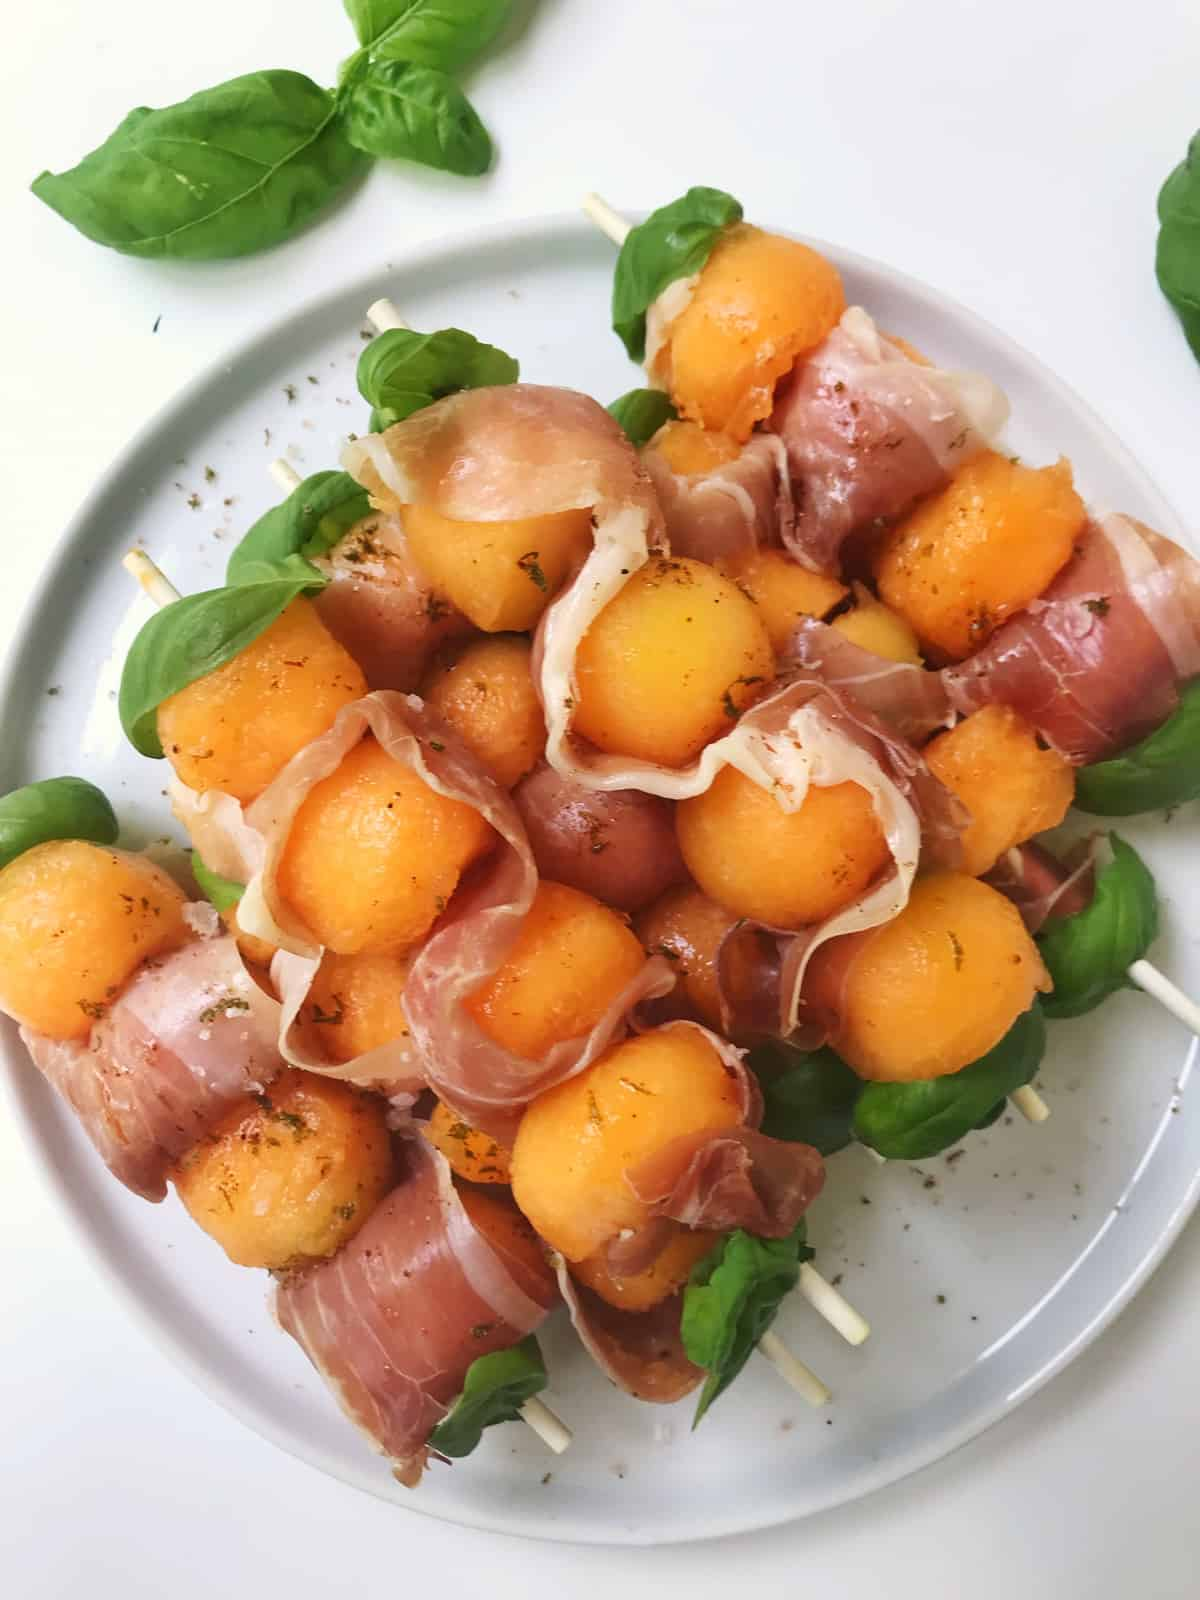 Prosciutto Melon Basil Skewers with Chili Lime Salt